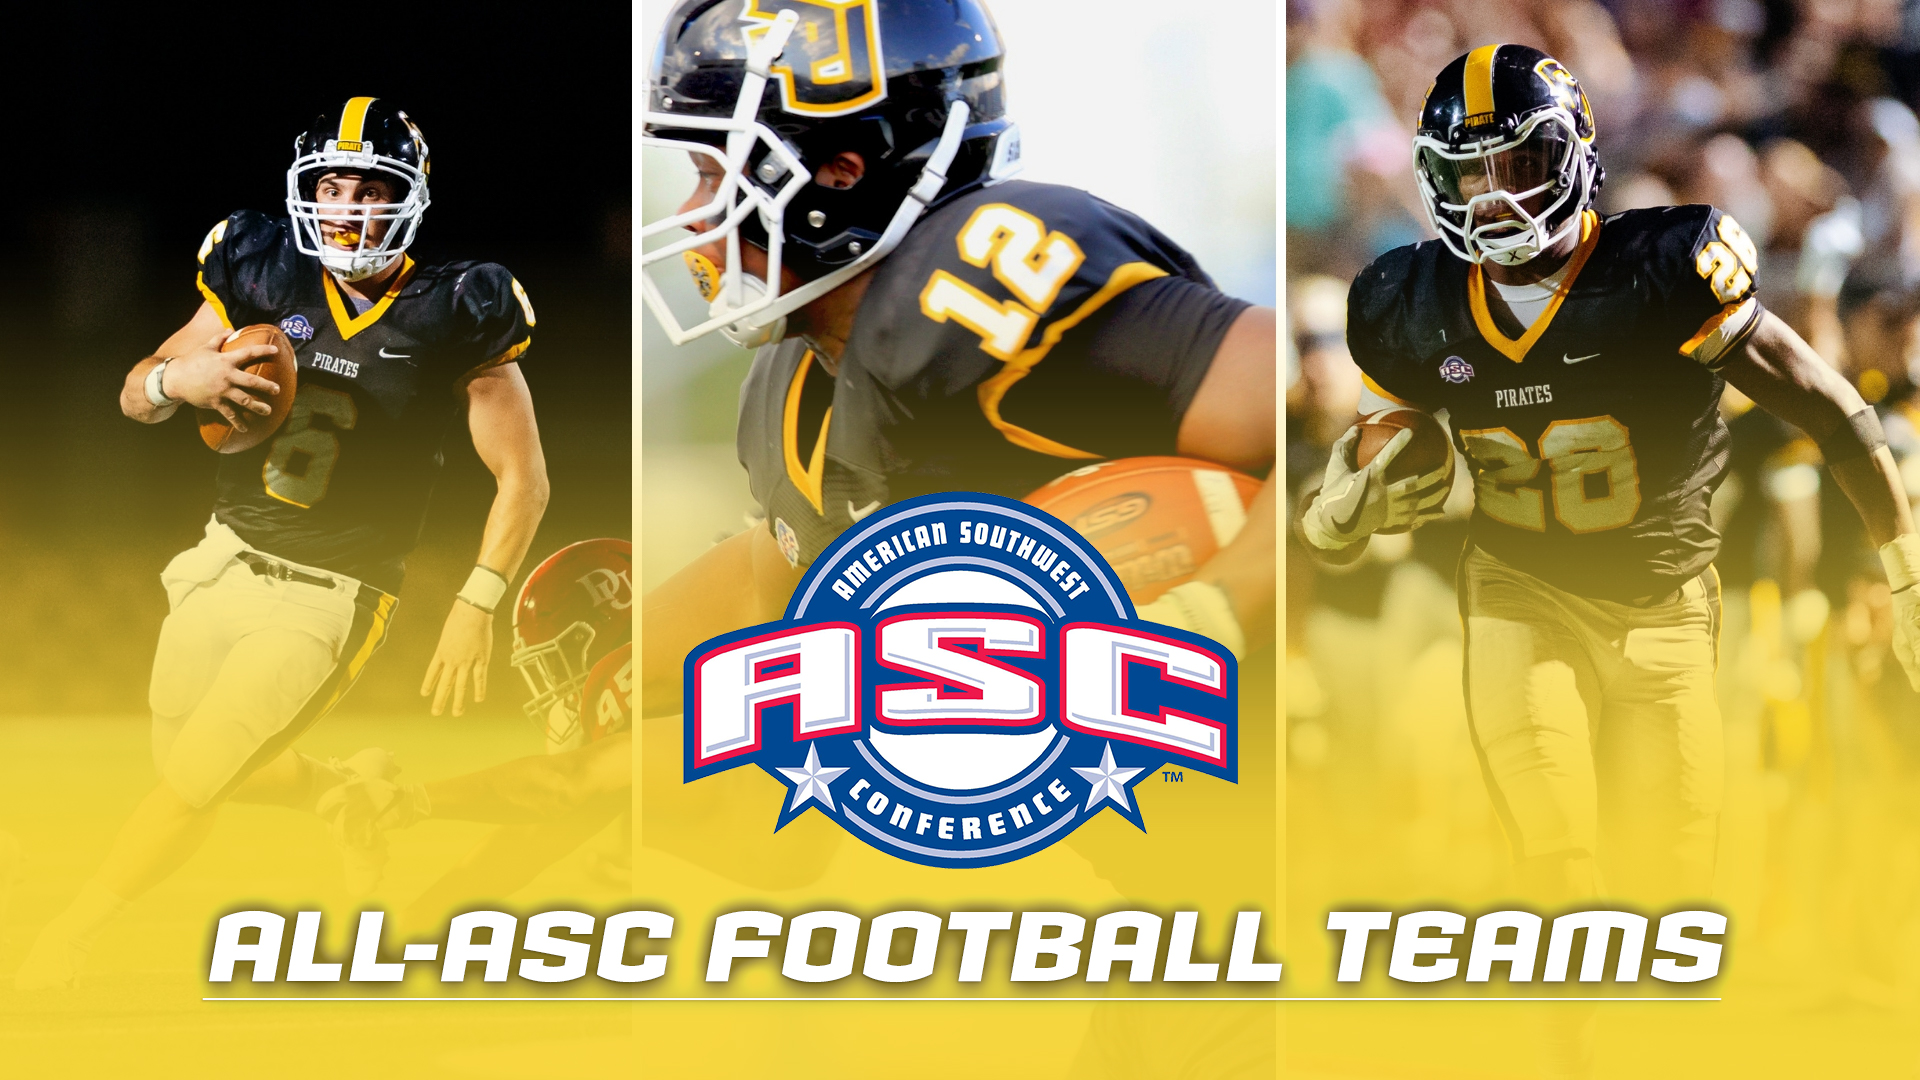 Ten Pirates Named To ASC Football All-Conference Teams